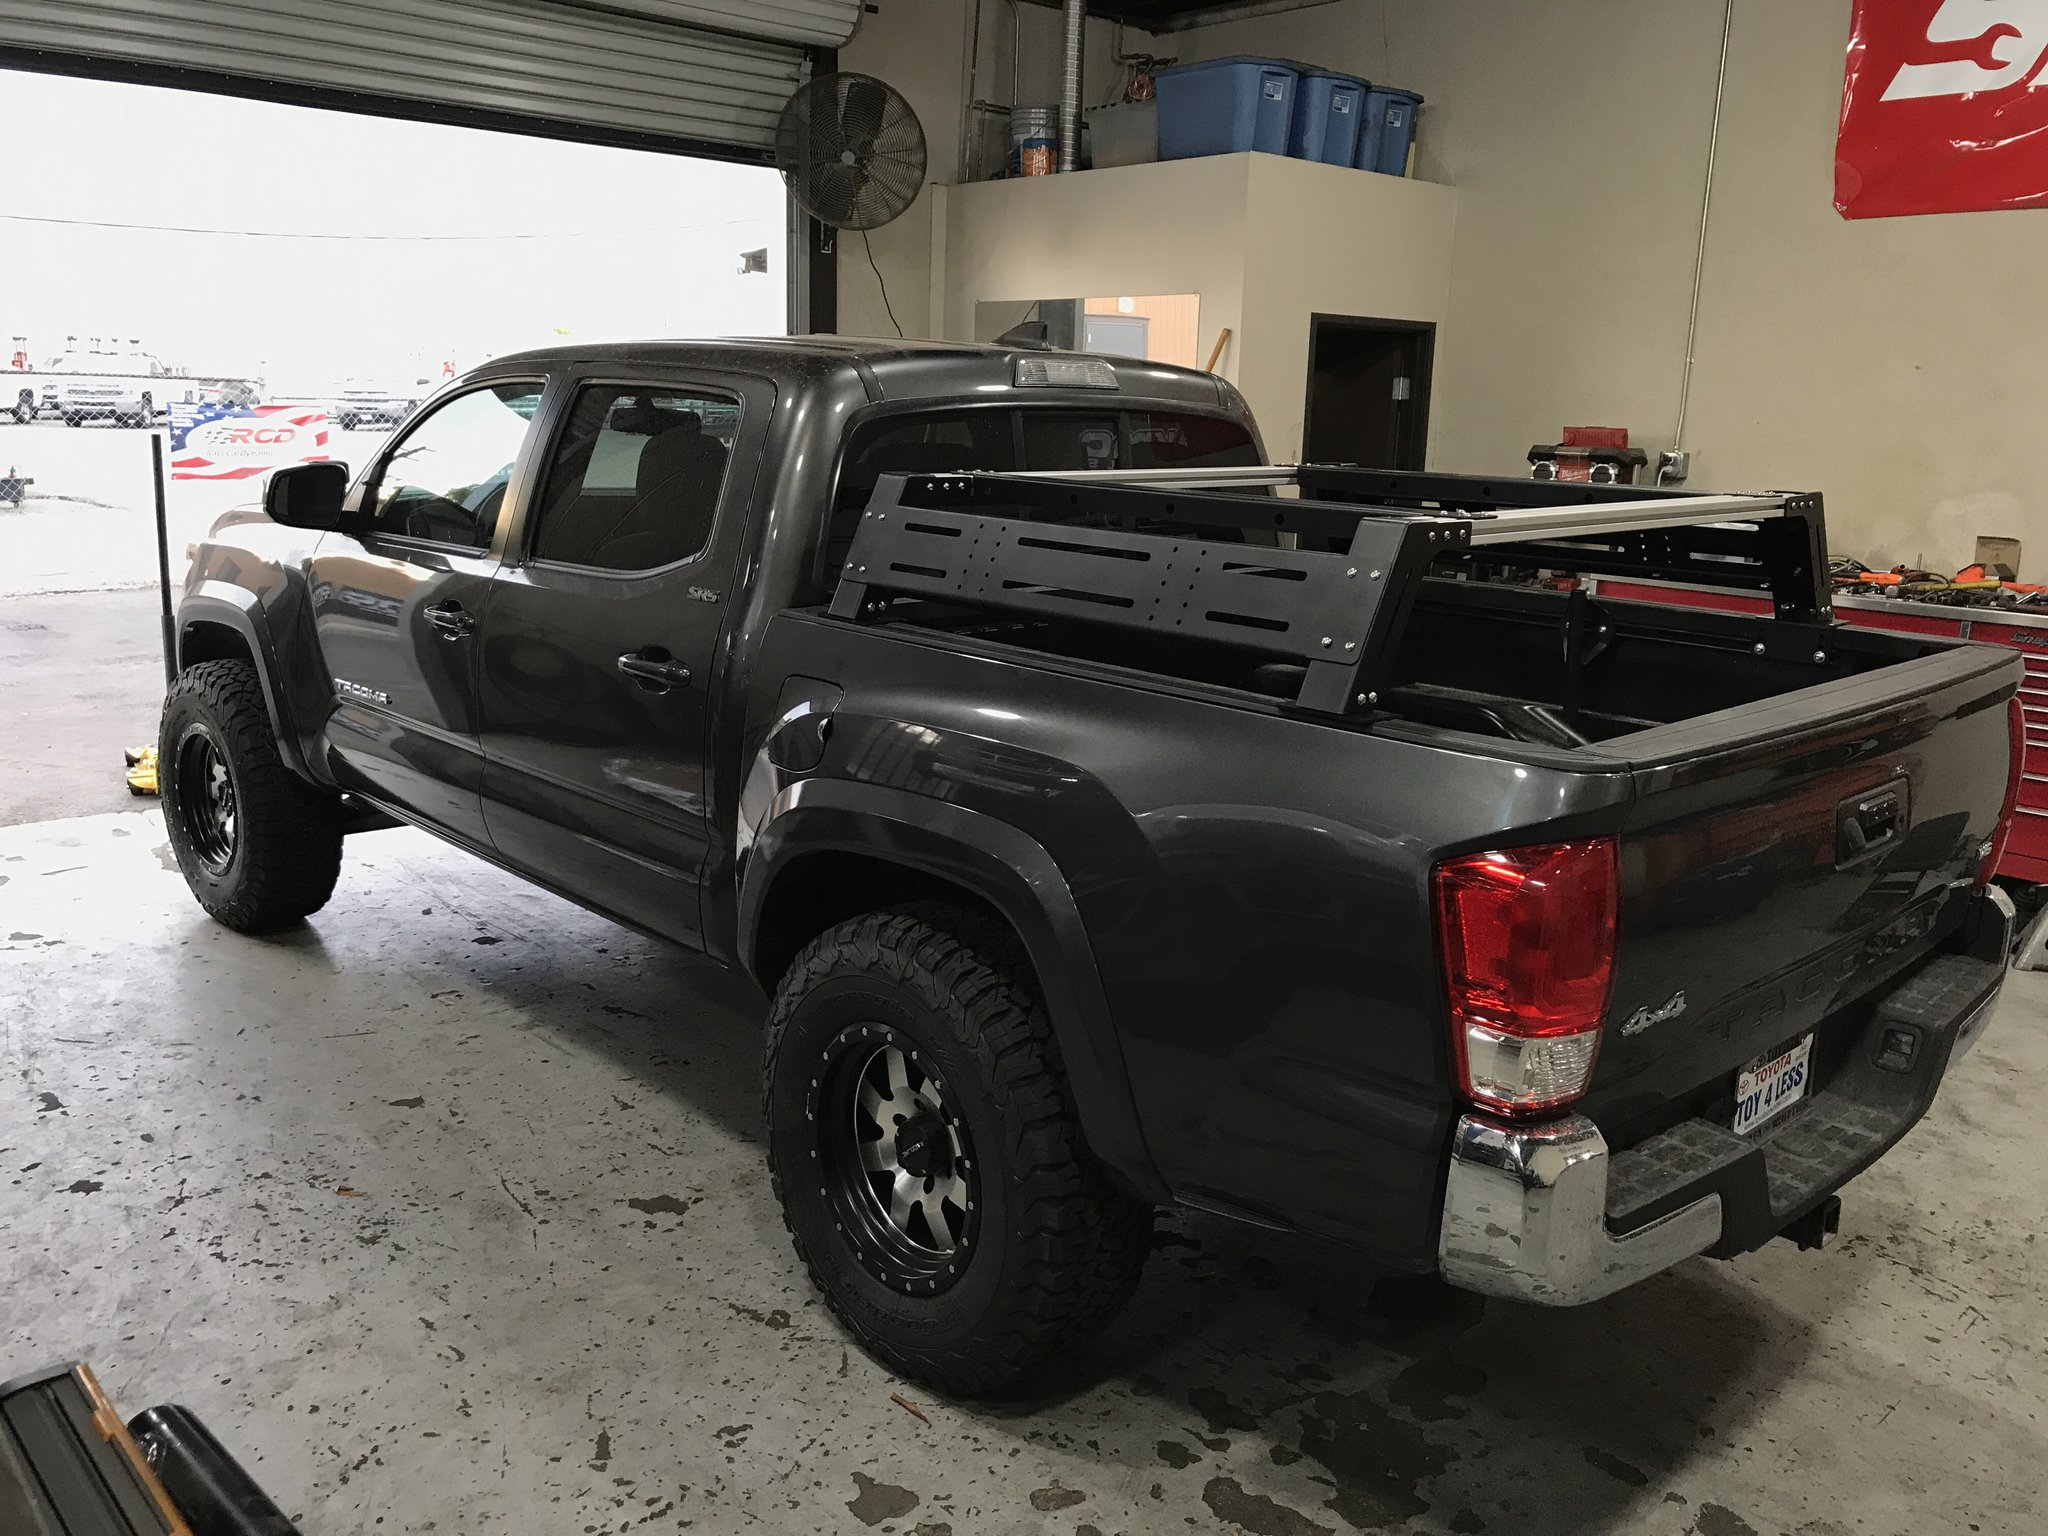 Cali Raised Tacoma Overland Bed Rack 2005-2020